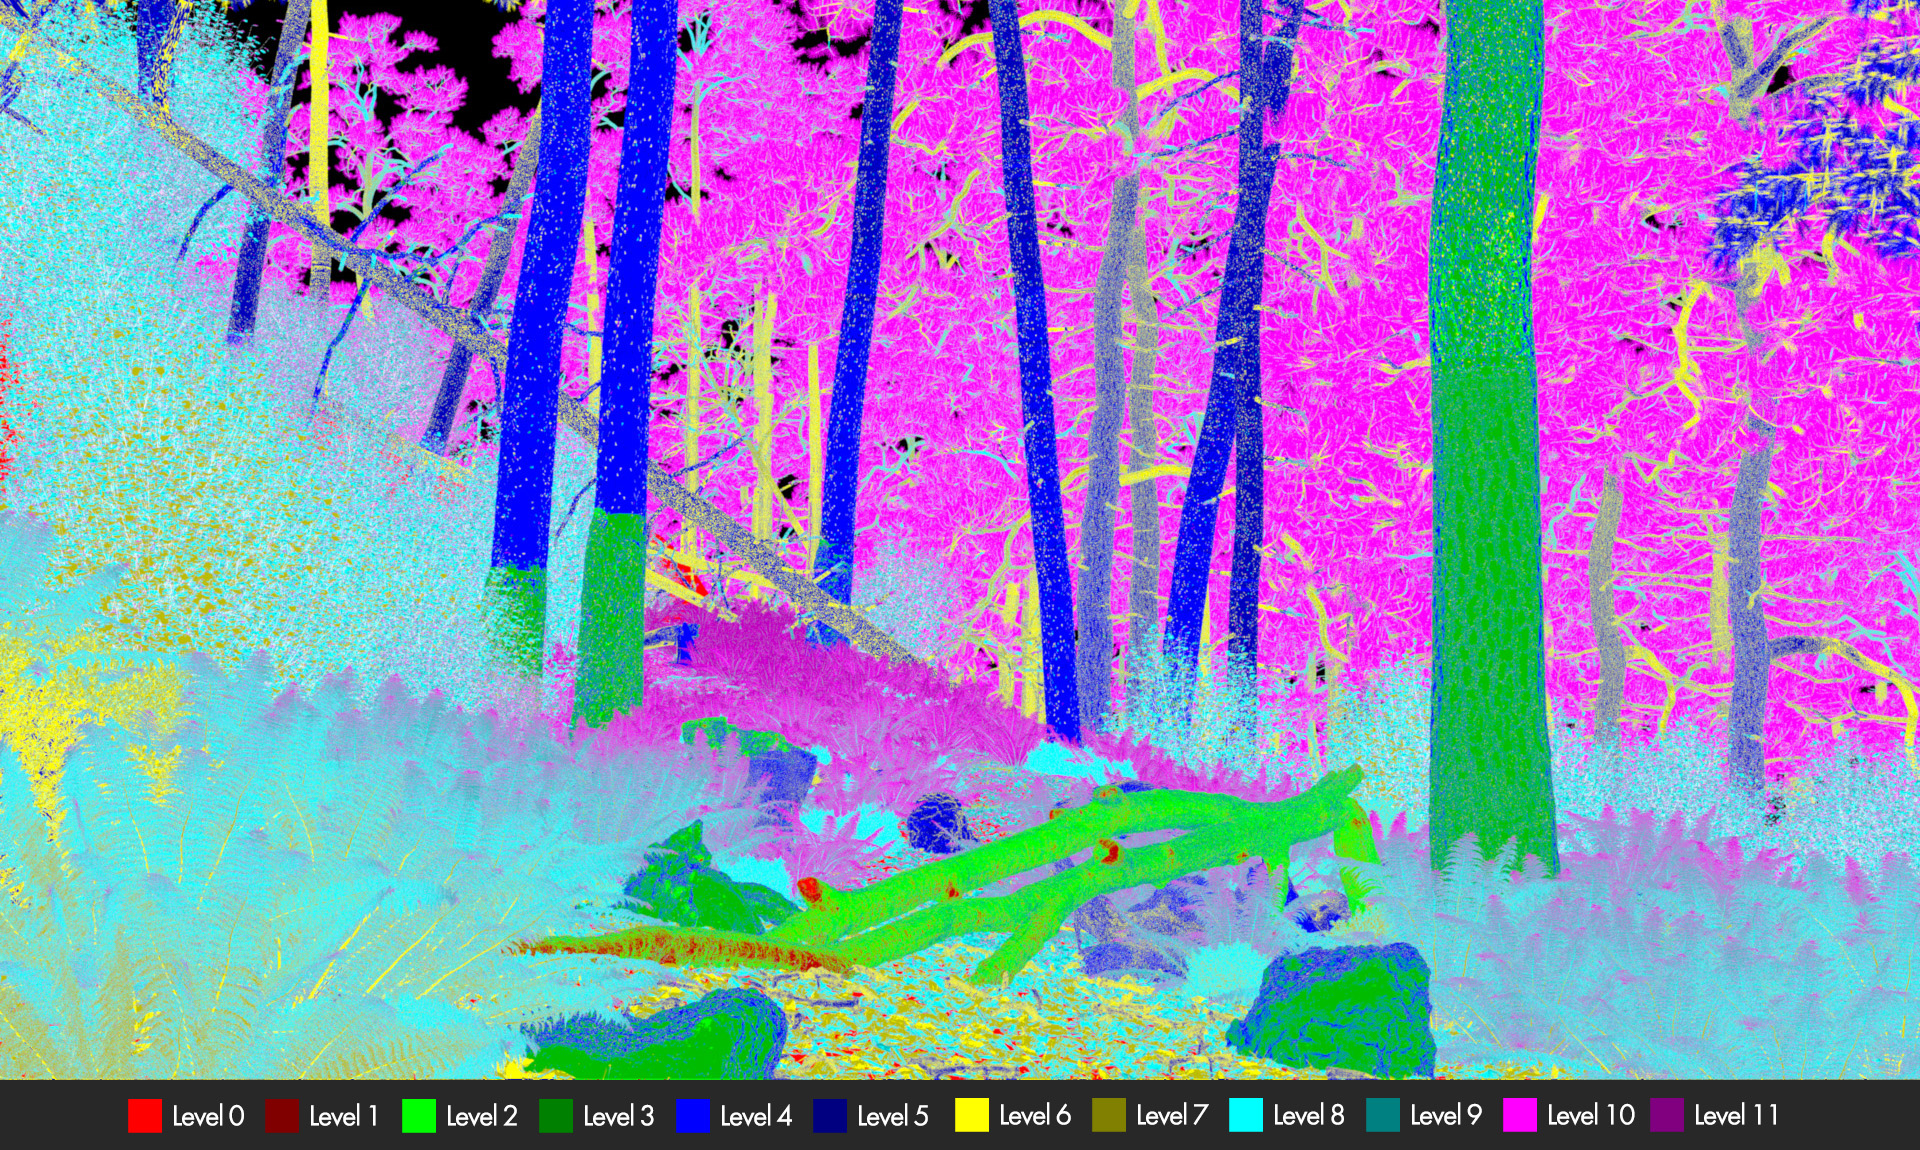 Figure 3: Mipmap levels accessed for the forest scene from Figure 1, rendered at 1920x1080 resolution.